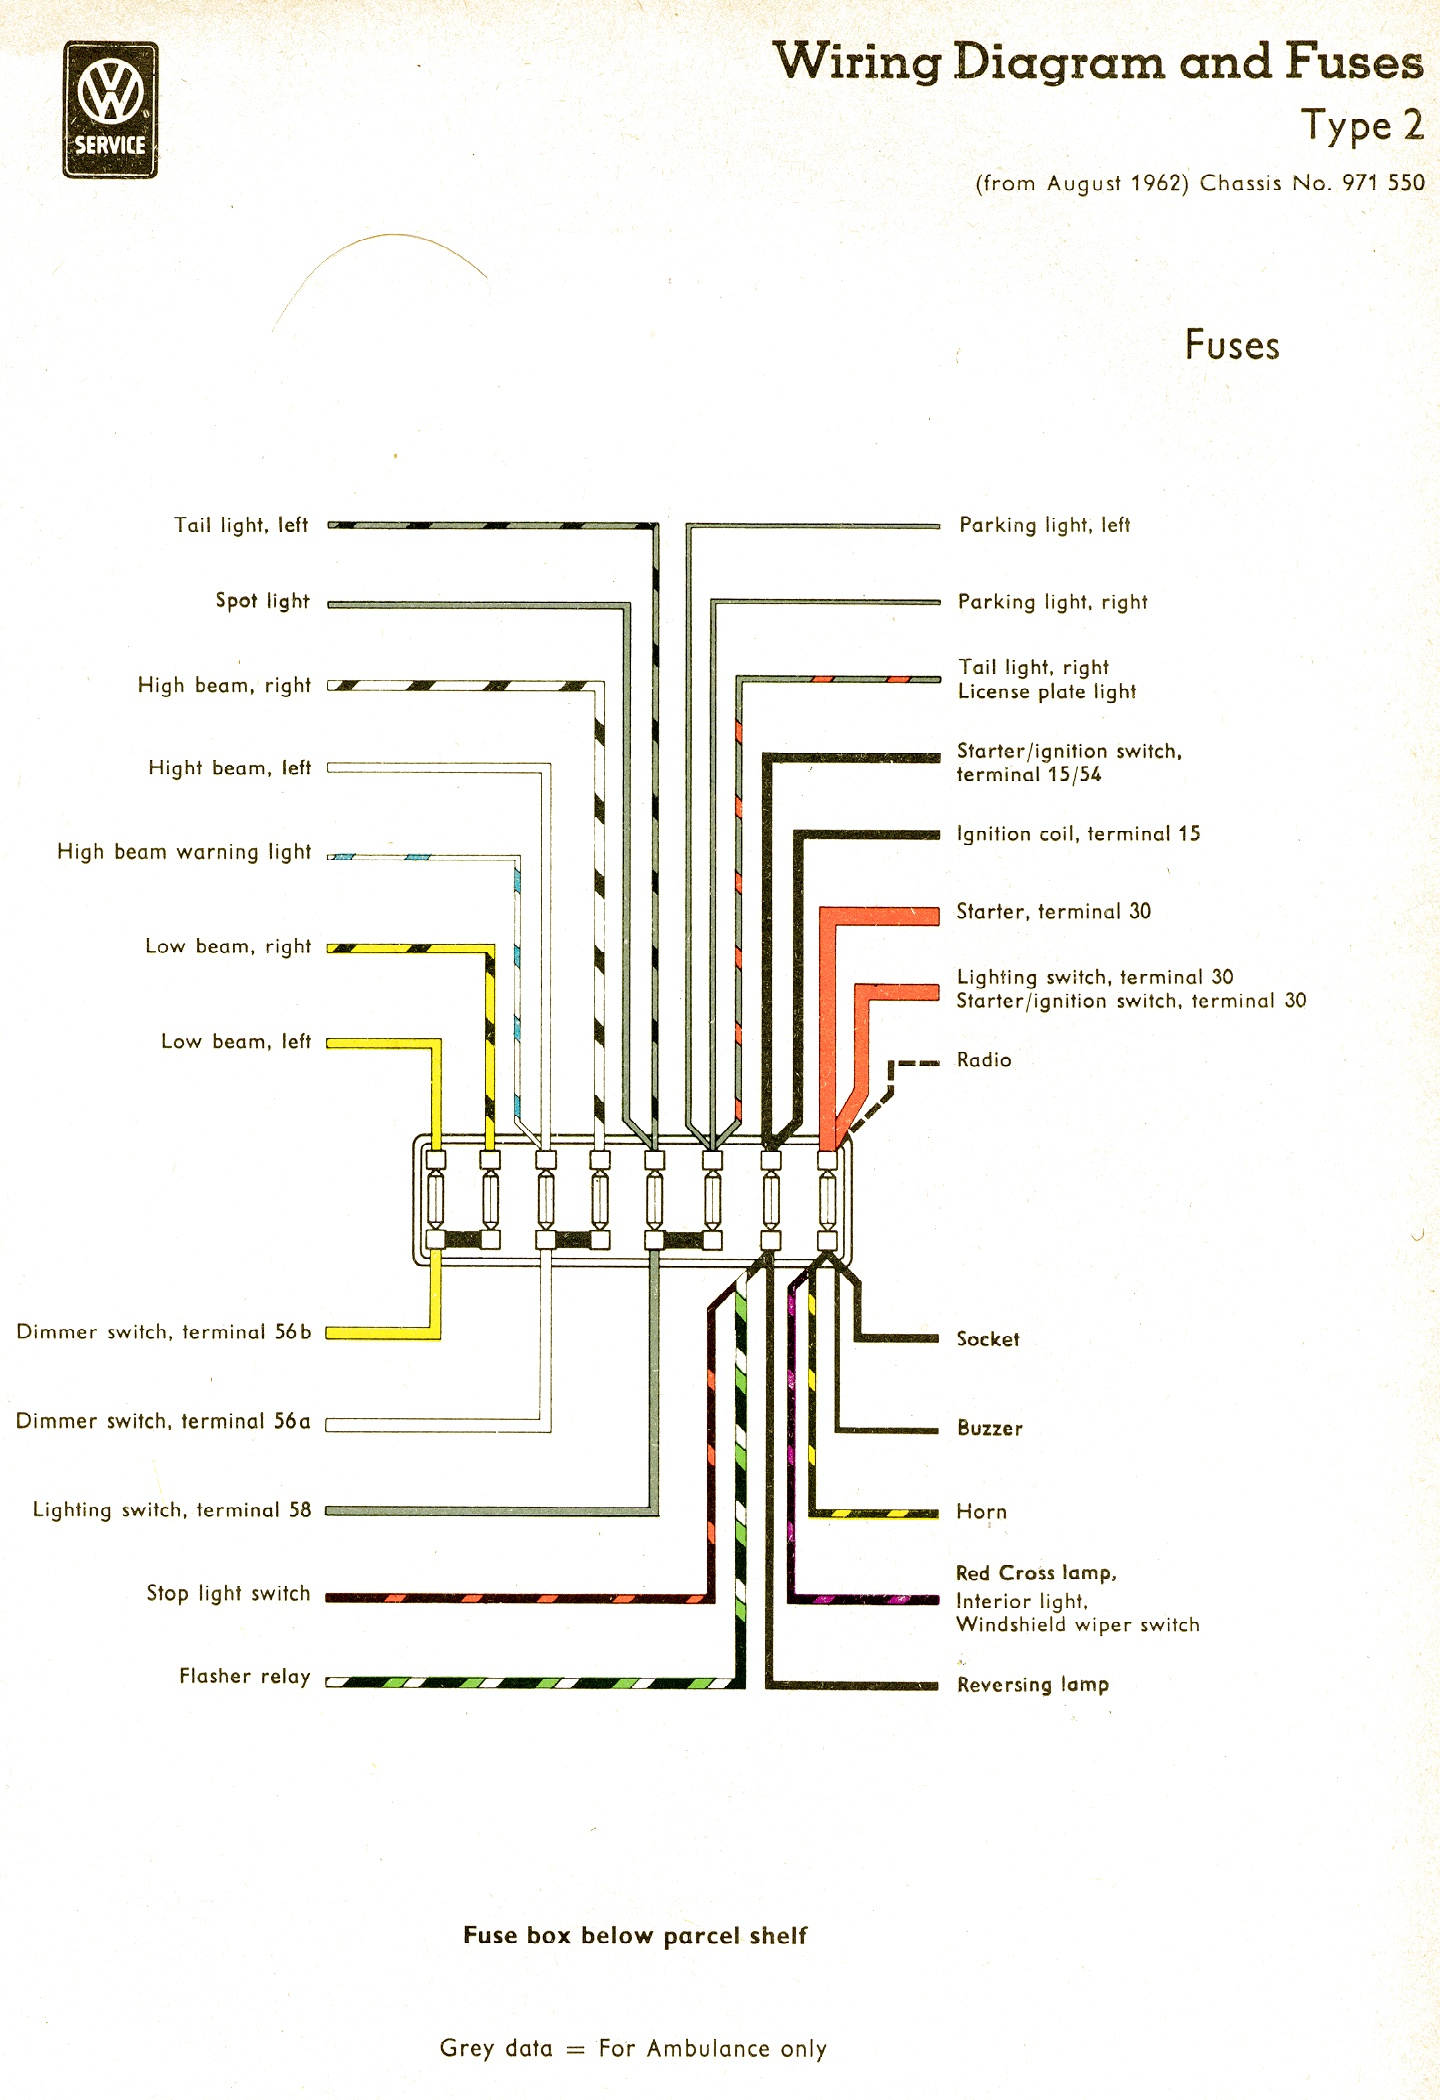 1972 Vw Fuse Diagram - wiring diagrams schematics